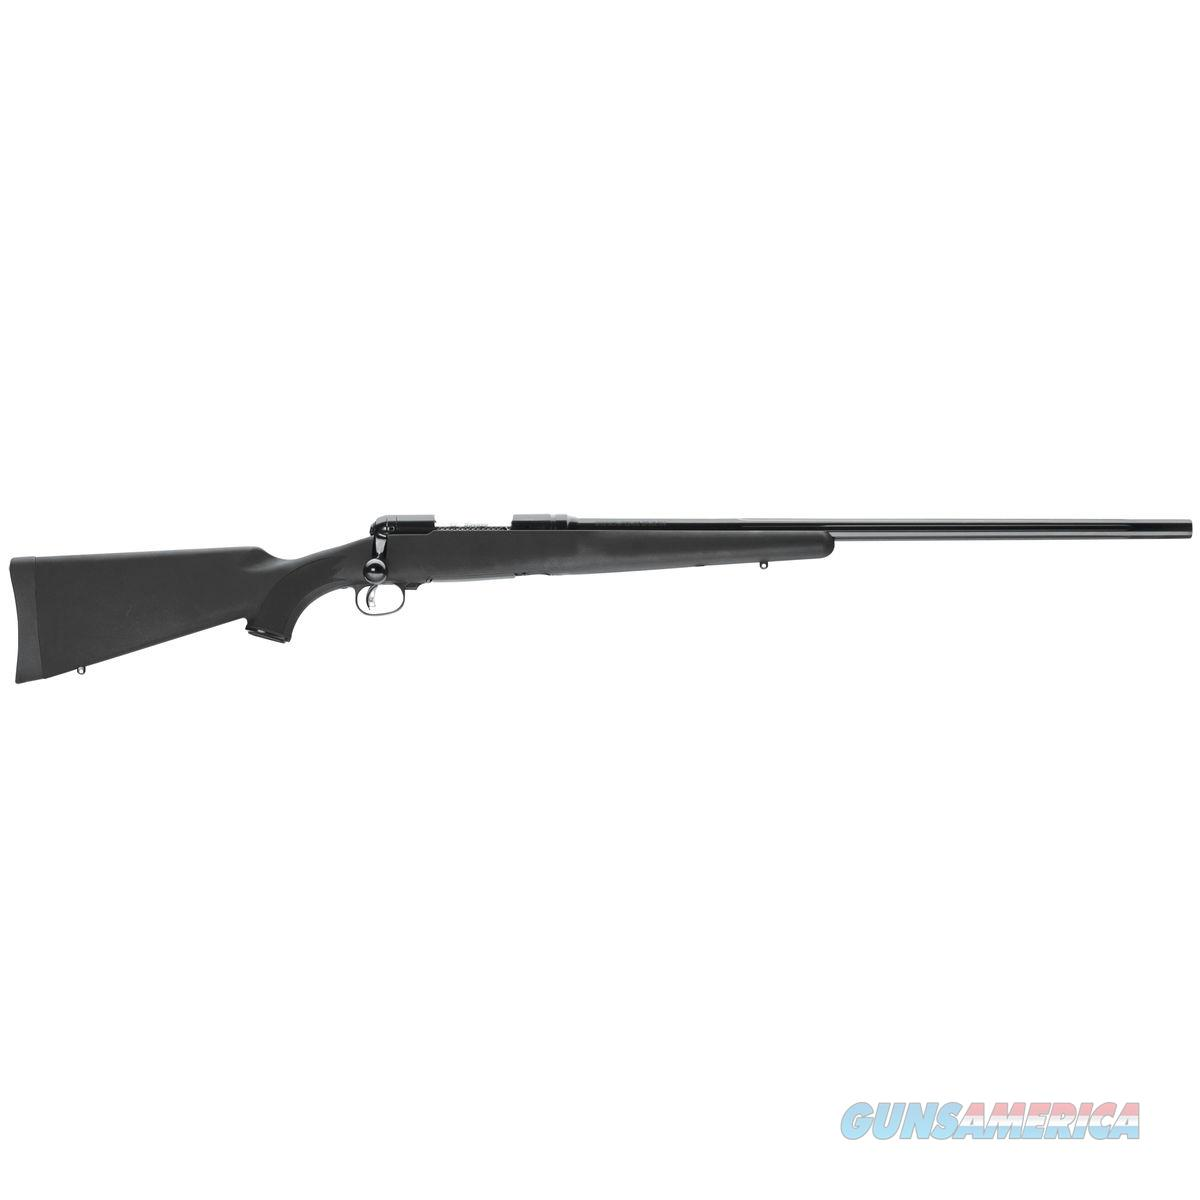 SAVAGE ARMS 12 FCV HEAVY BARREL .204 RUGER 22446  Guns > Rifles > Savage Rifles > 12/112